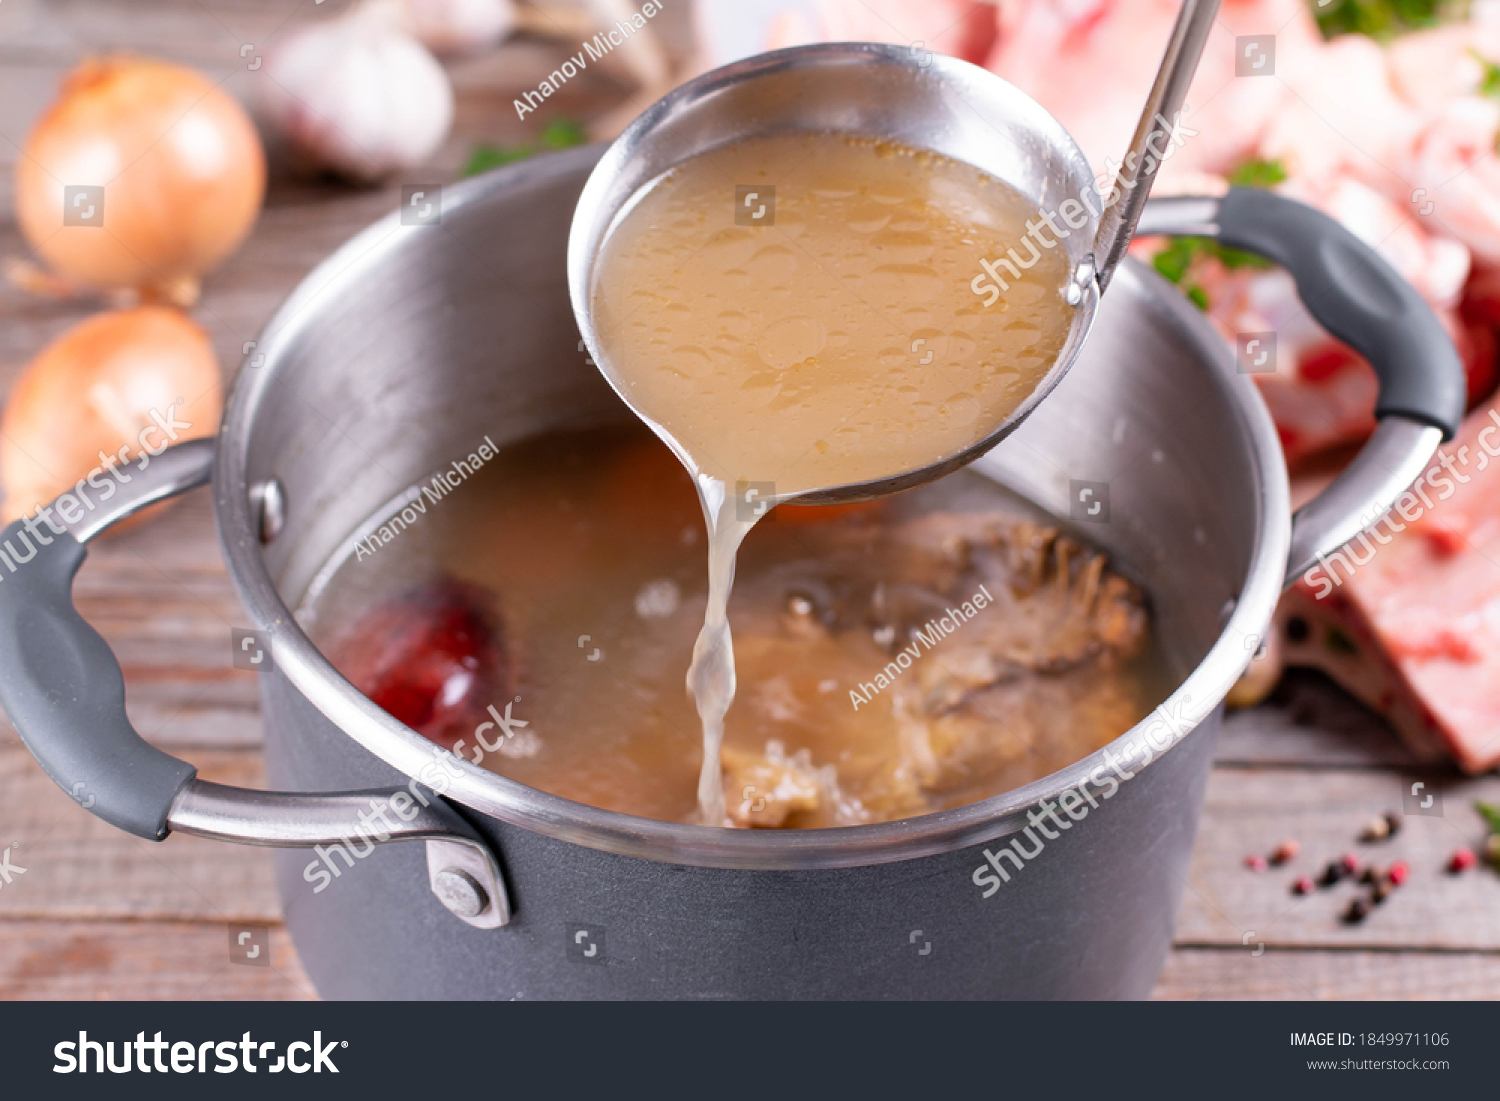 Saucepan with bouillon with a ladle on the table. Bone broth #1849971106